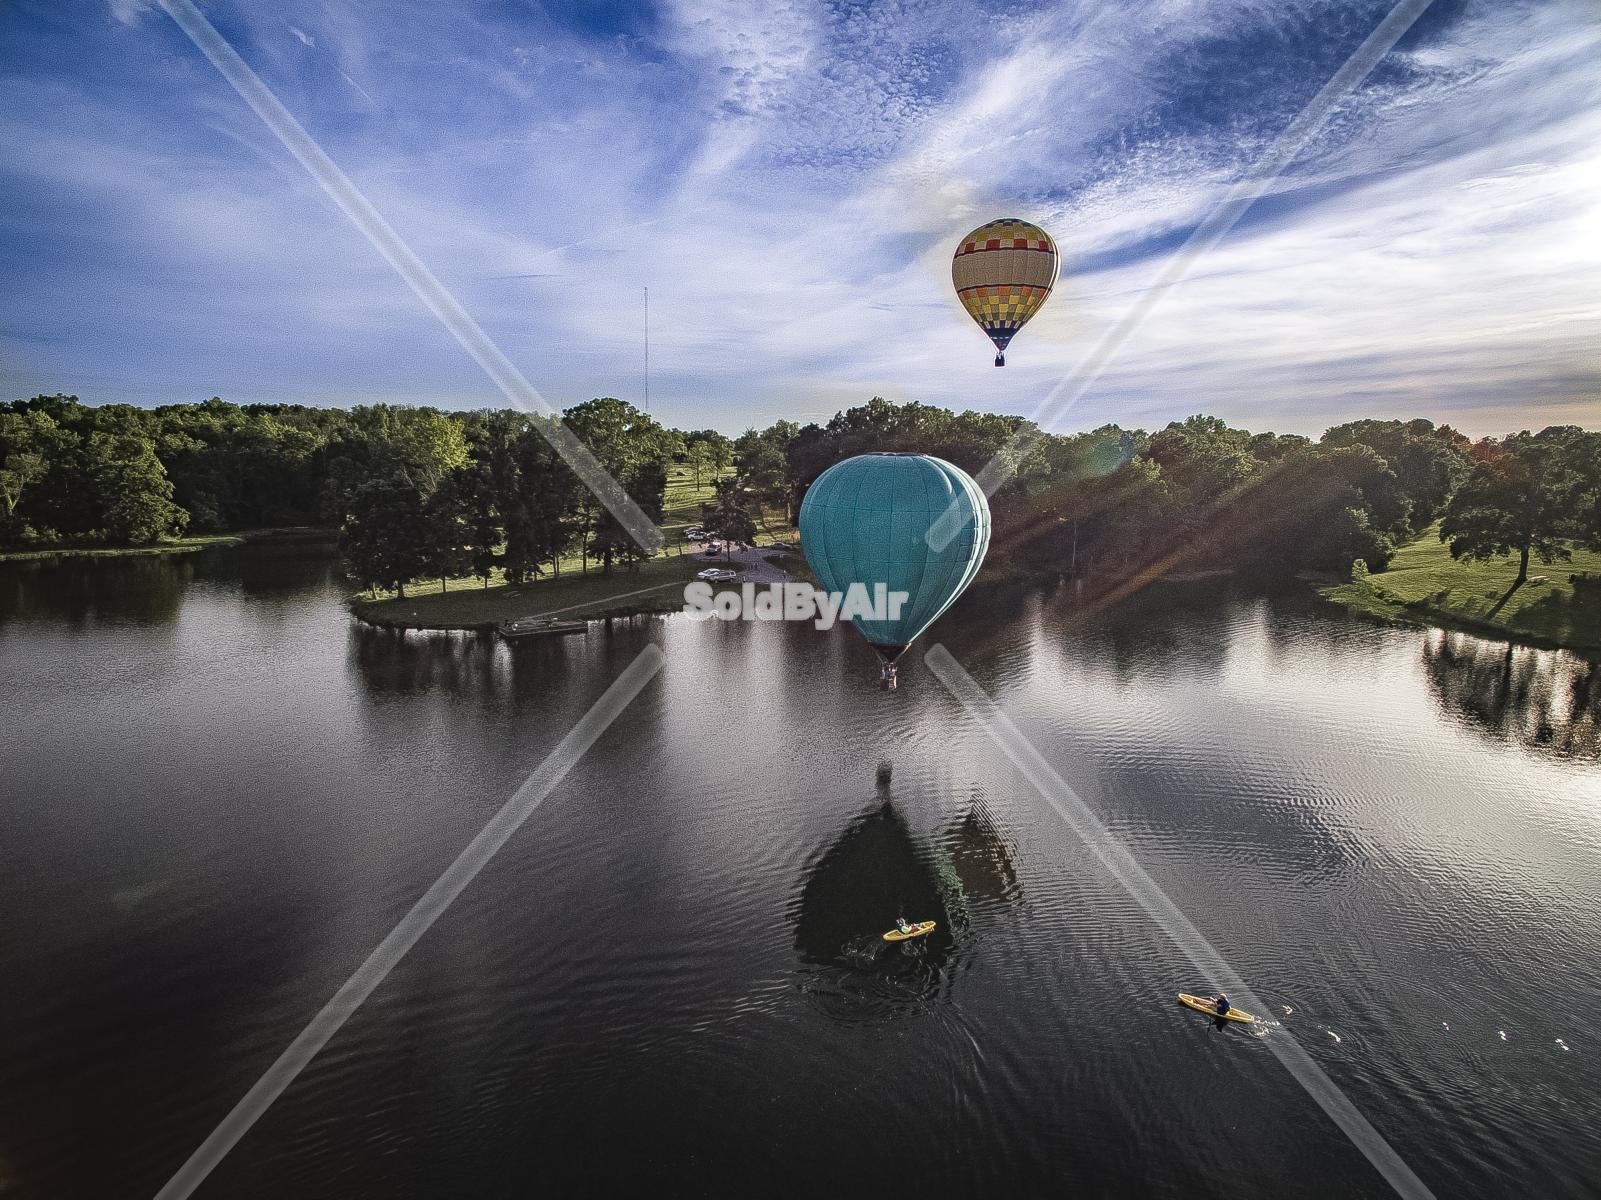 Drone Photo of Hot Air balloons flying over a lake in Louisville Kentucky